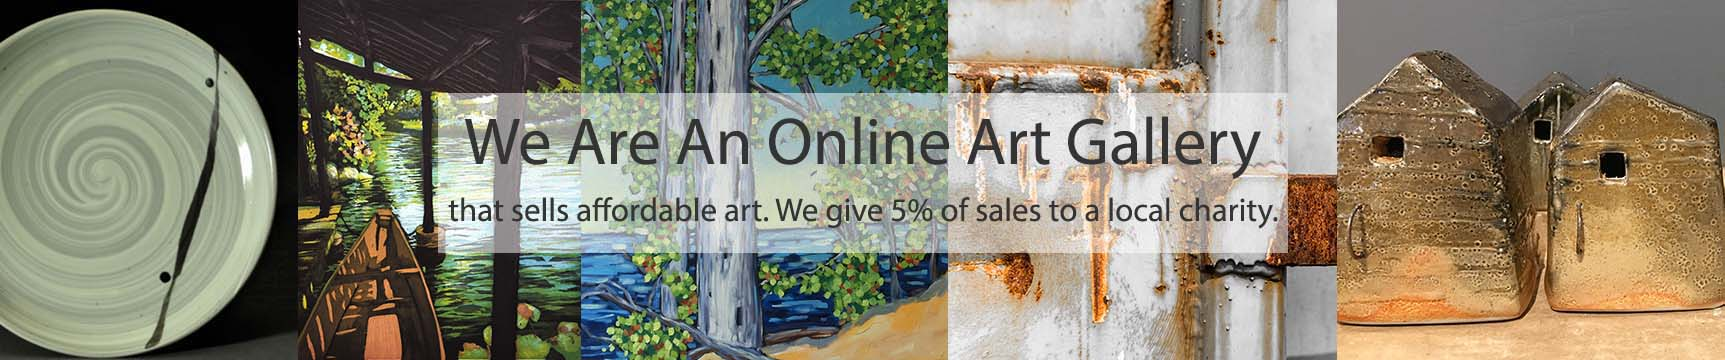 C2C Gallery Is A Unique Online Art Gallery